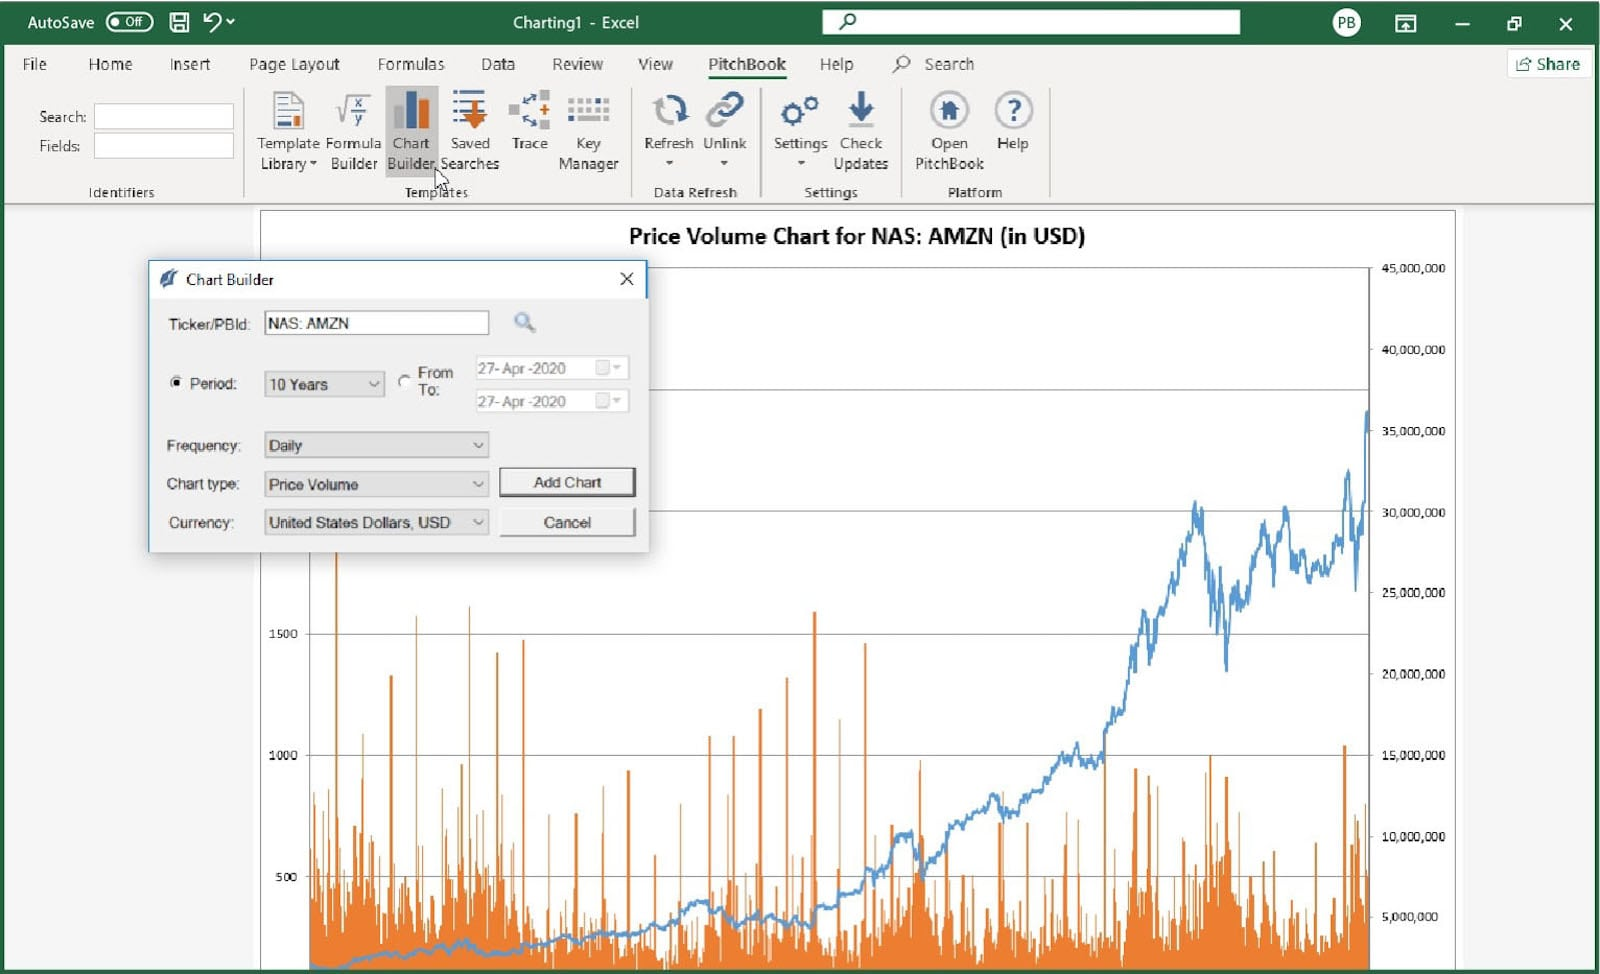 PitchBook Excel Plugin 10 year price volume chart for NAS: AMZN in USD